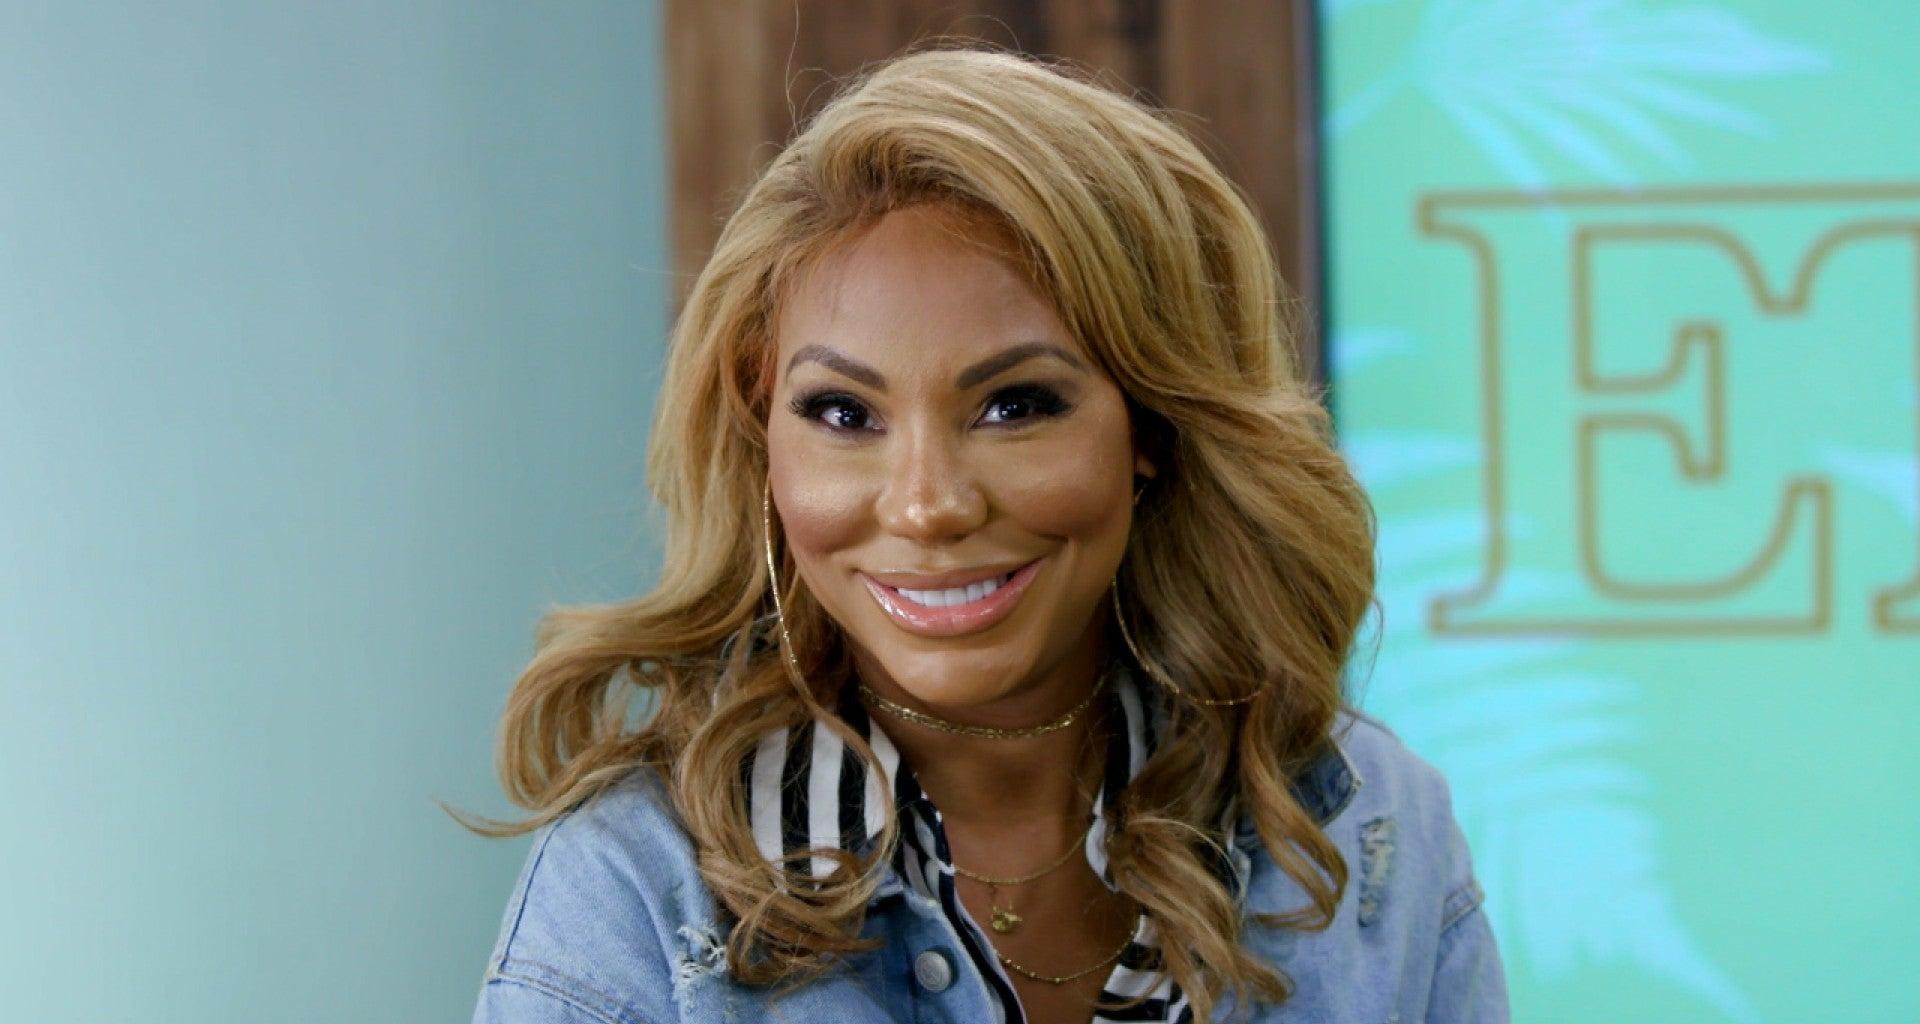 Tamar Braxton's Recent Video Sparks Cosmetic Surgery Rumors